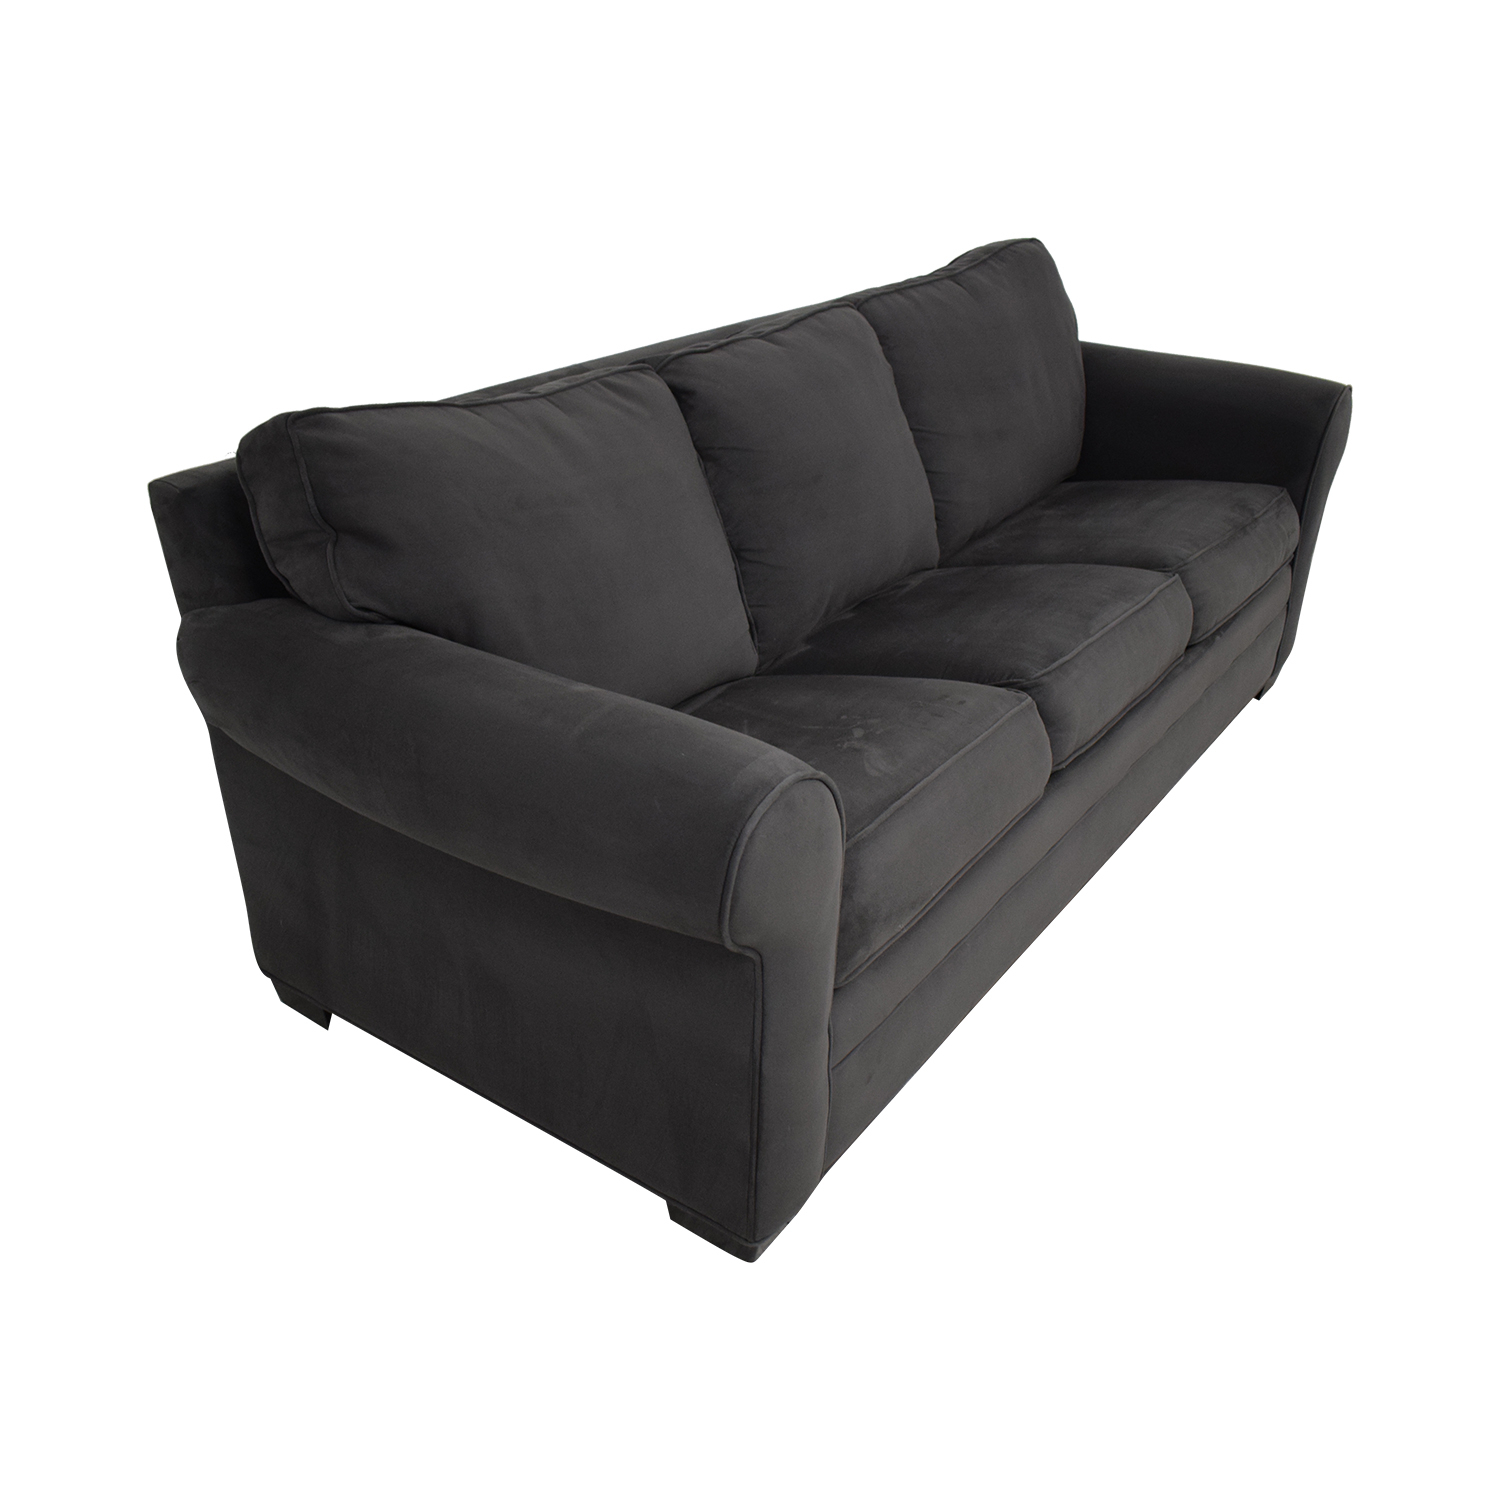 62% Off – Cindy Crawford Home Cindy Crawford Home Grey Pertaining To Cindy Crawford Sofas (View 8 of 15)